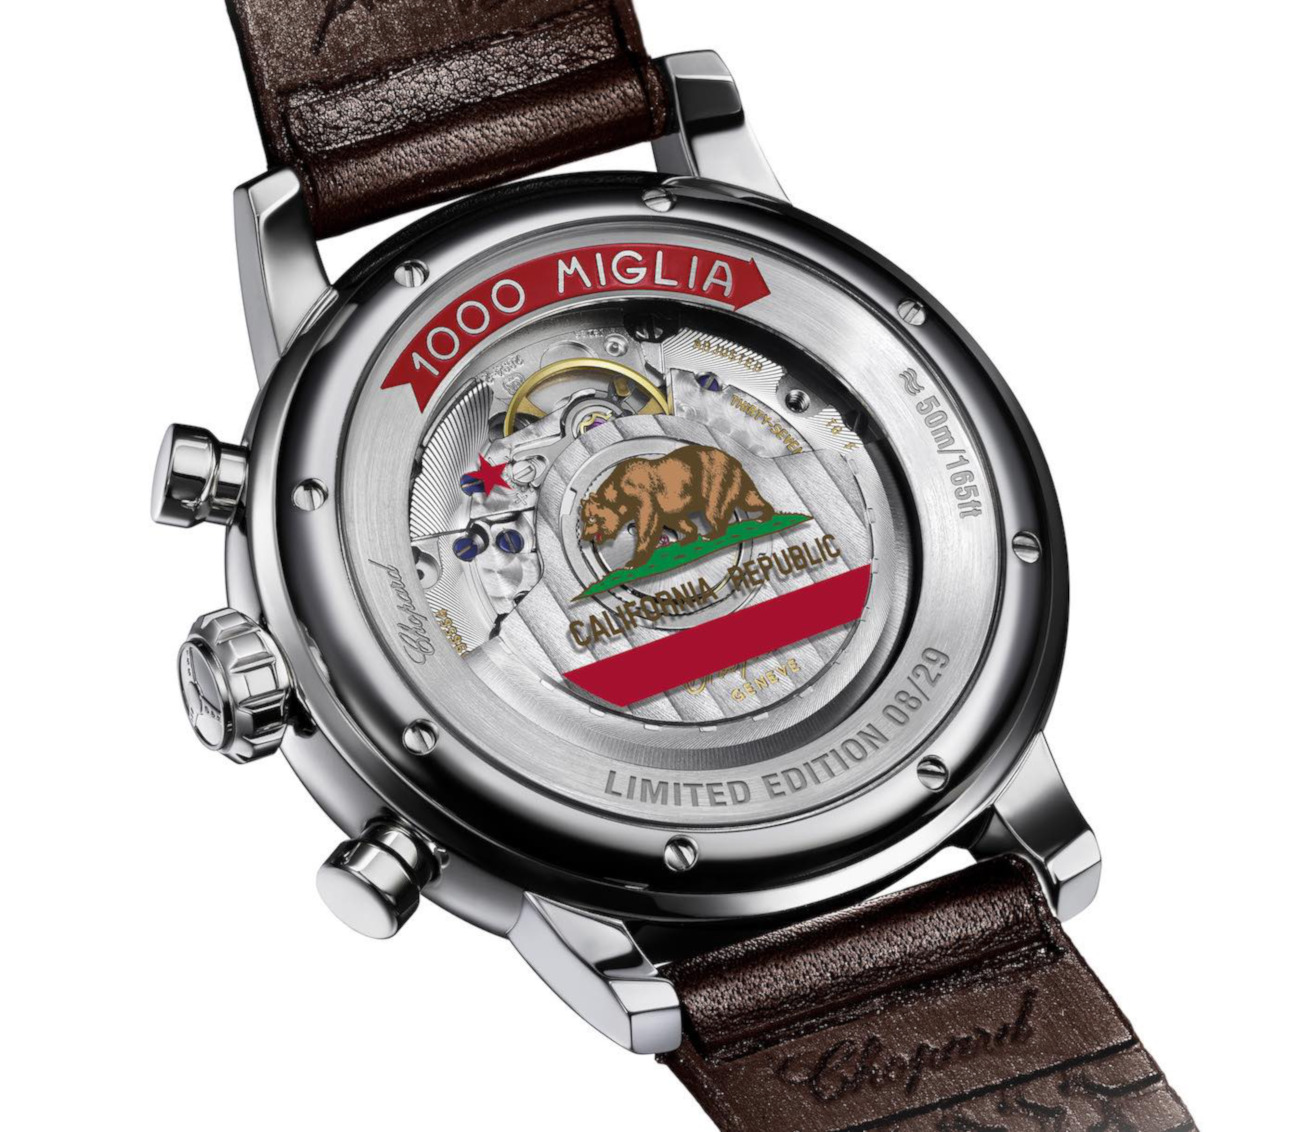 Chopard Mille Miglia Classic Chronograph California Mille Edition Watch